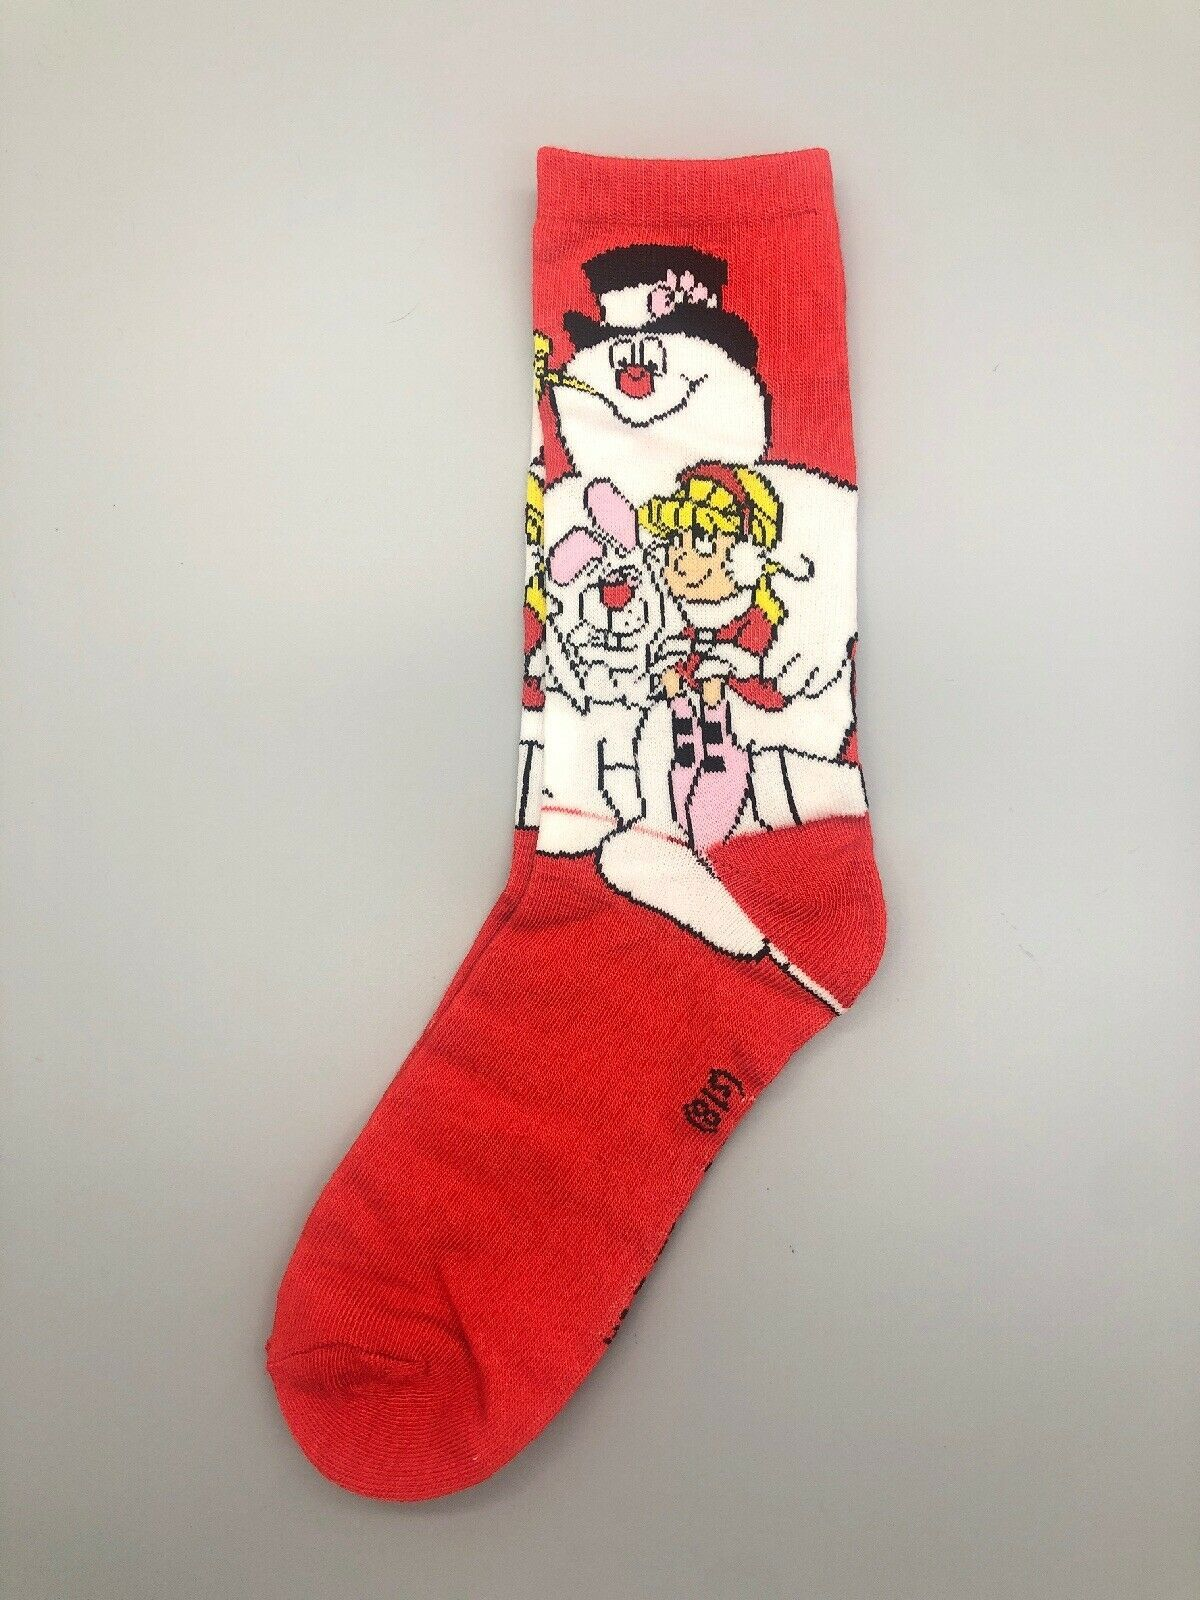 FROSTY THE SNOWMAN CHRISTMAS 3 Pack Crew Socks Size 6-12 image 7